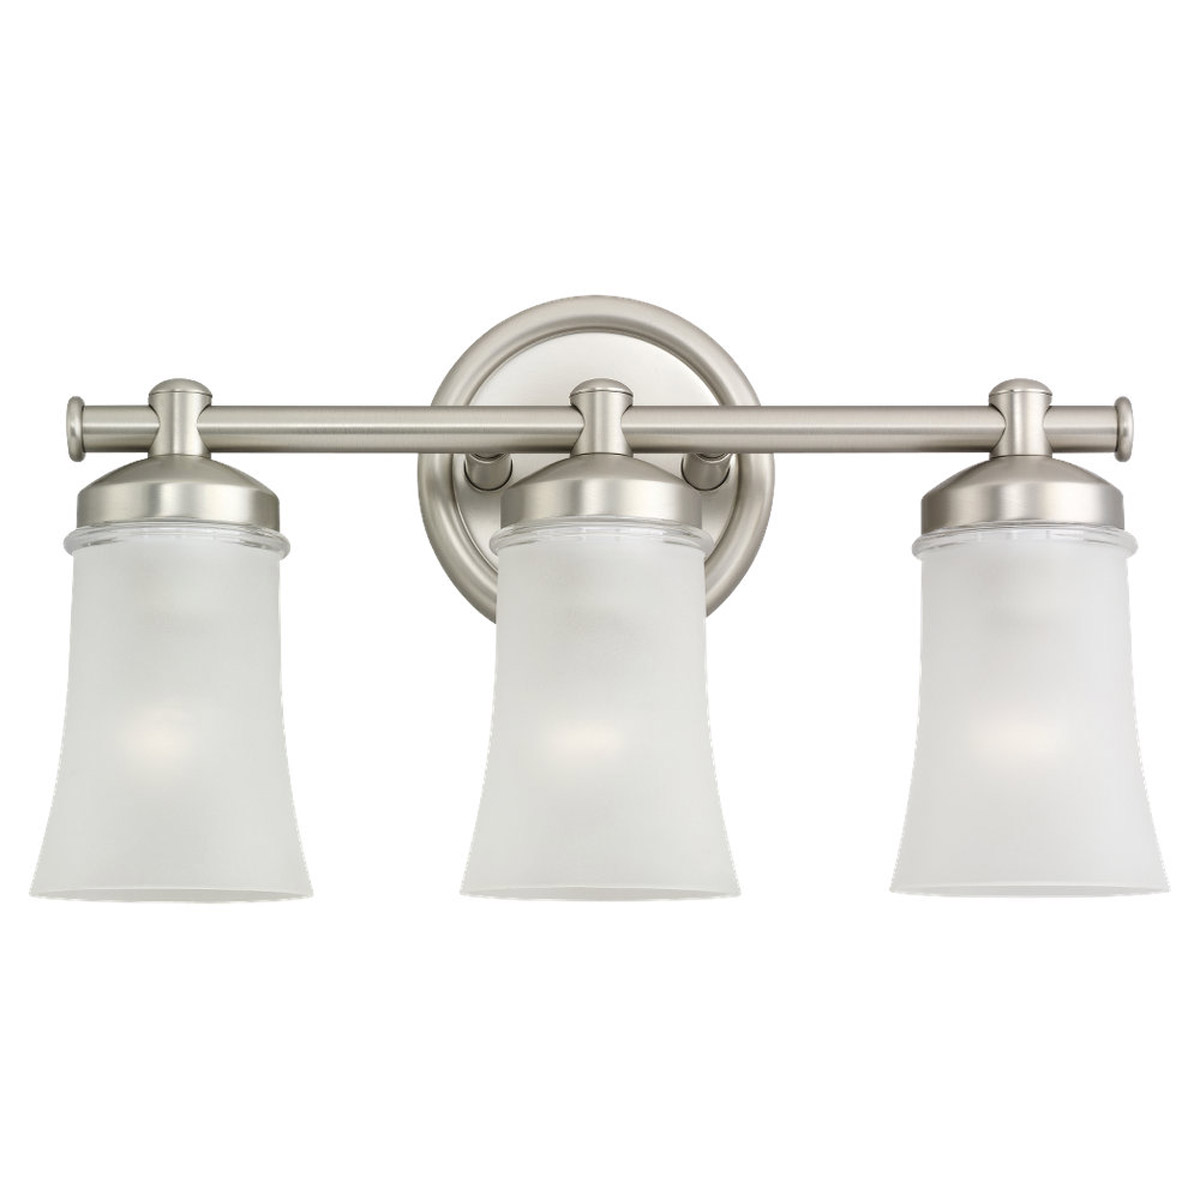 Sea Gull 44484BLE-965 Newport 3 Light 18 inch Antique Brushed Nickel Bath Vanity Wall Light in Fluorescent photo